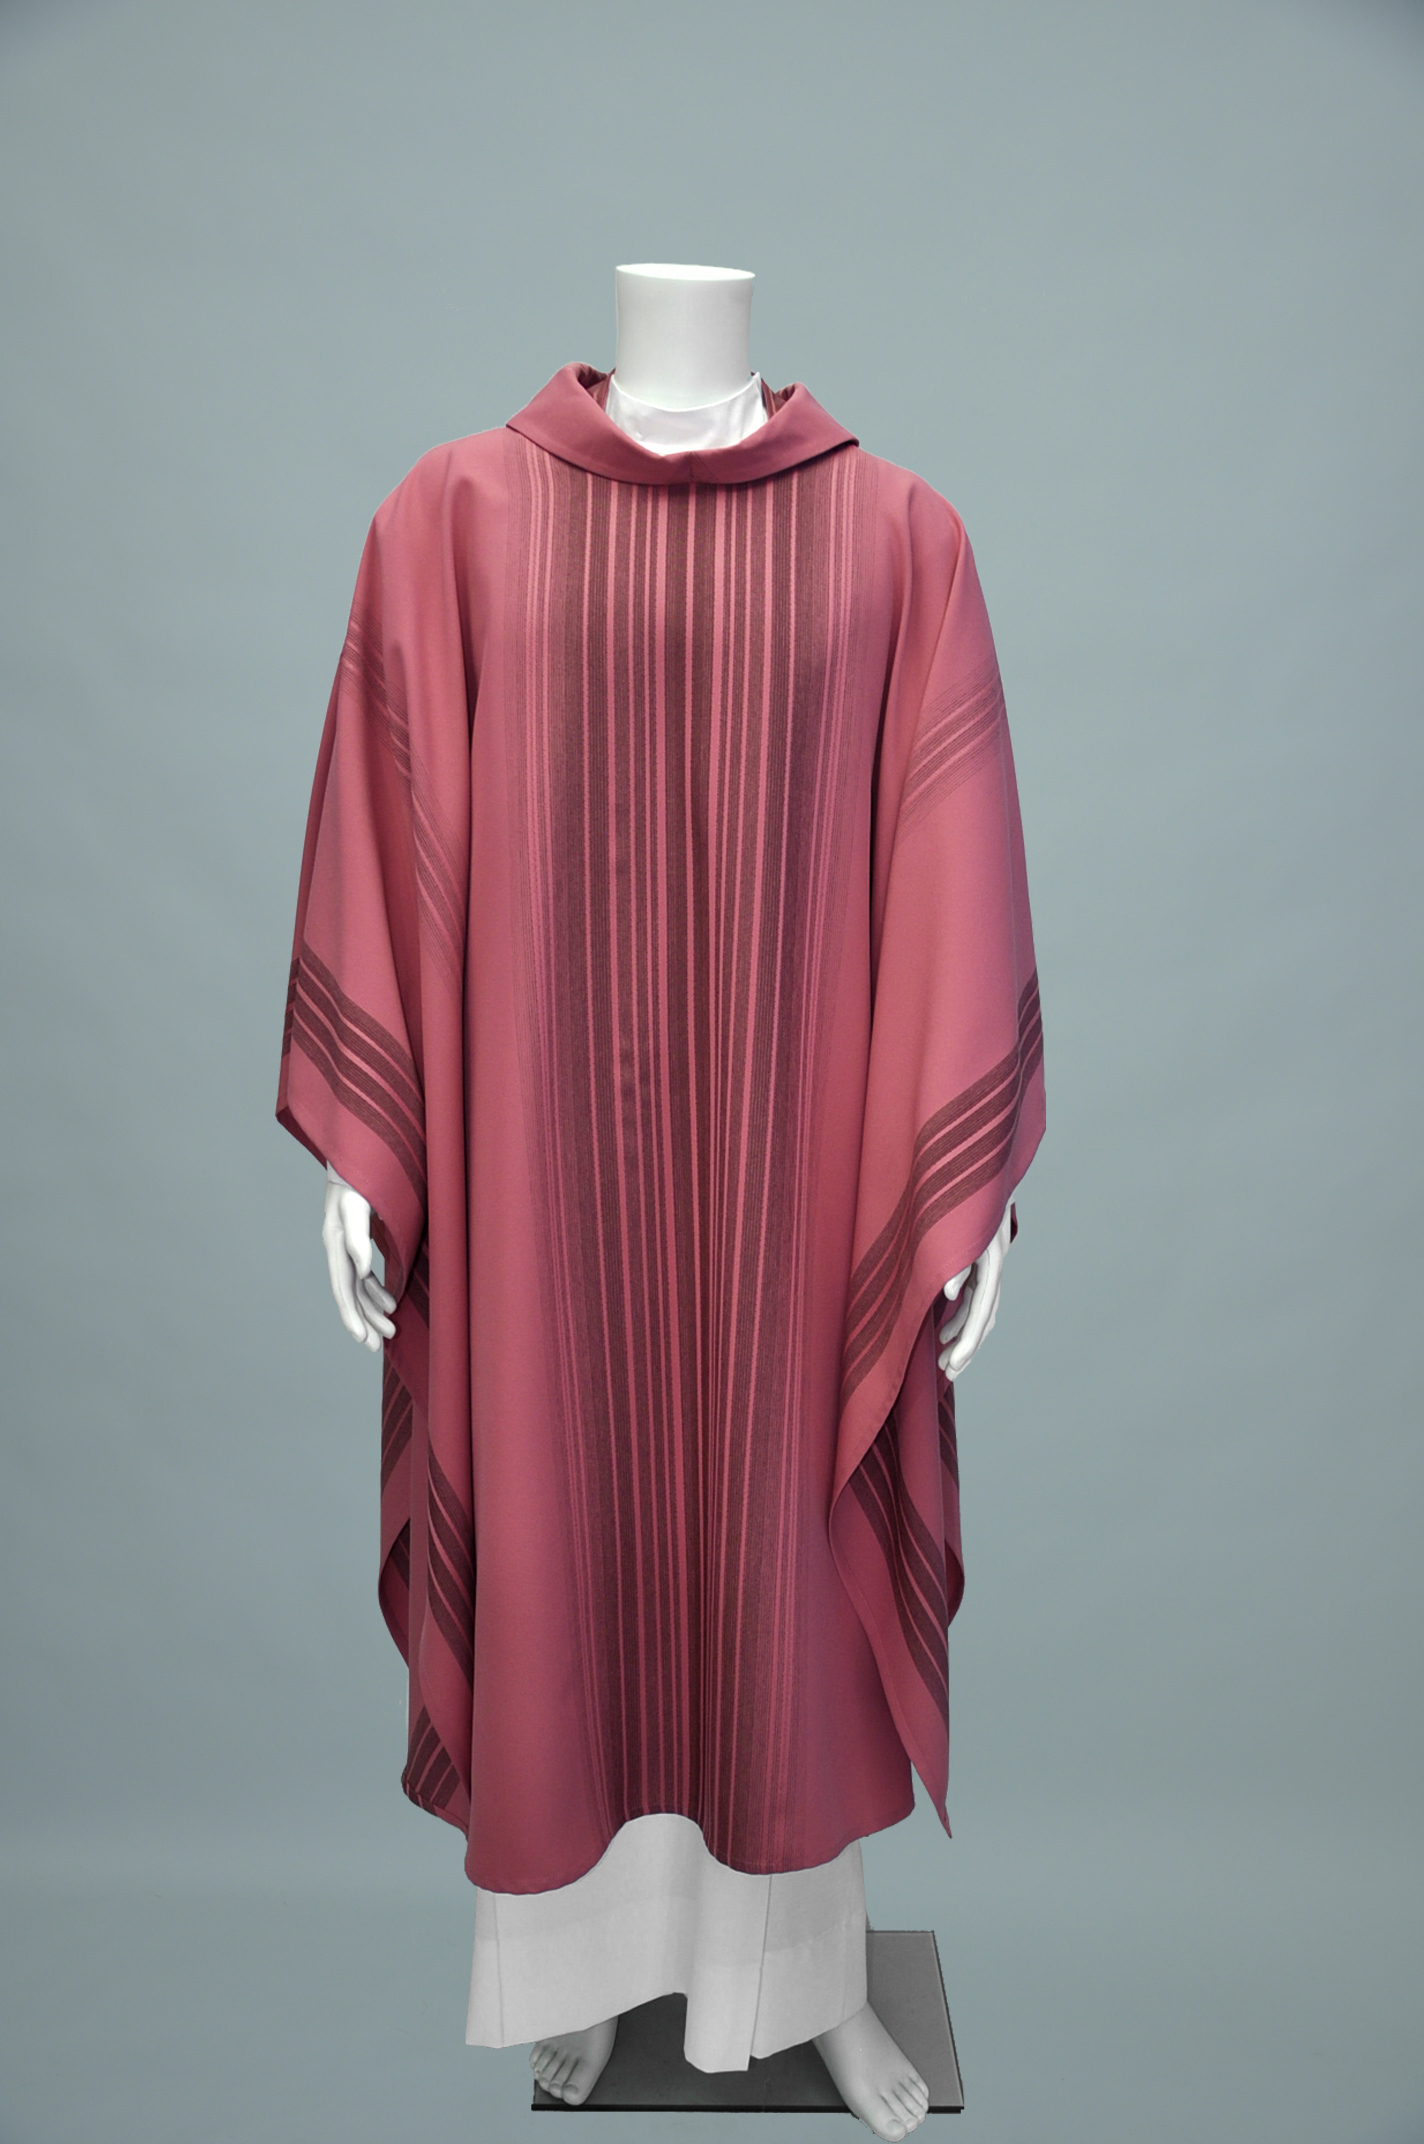 ROSE MONE CHASUBLE W/ STOLE (F) 1